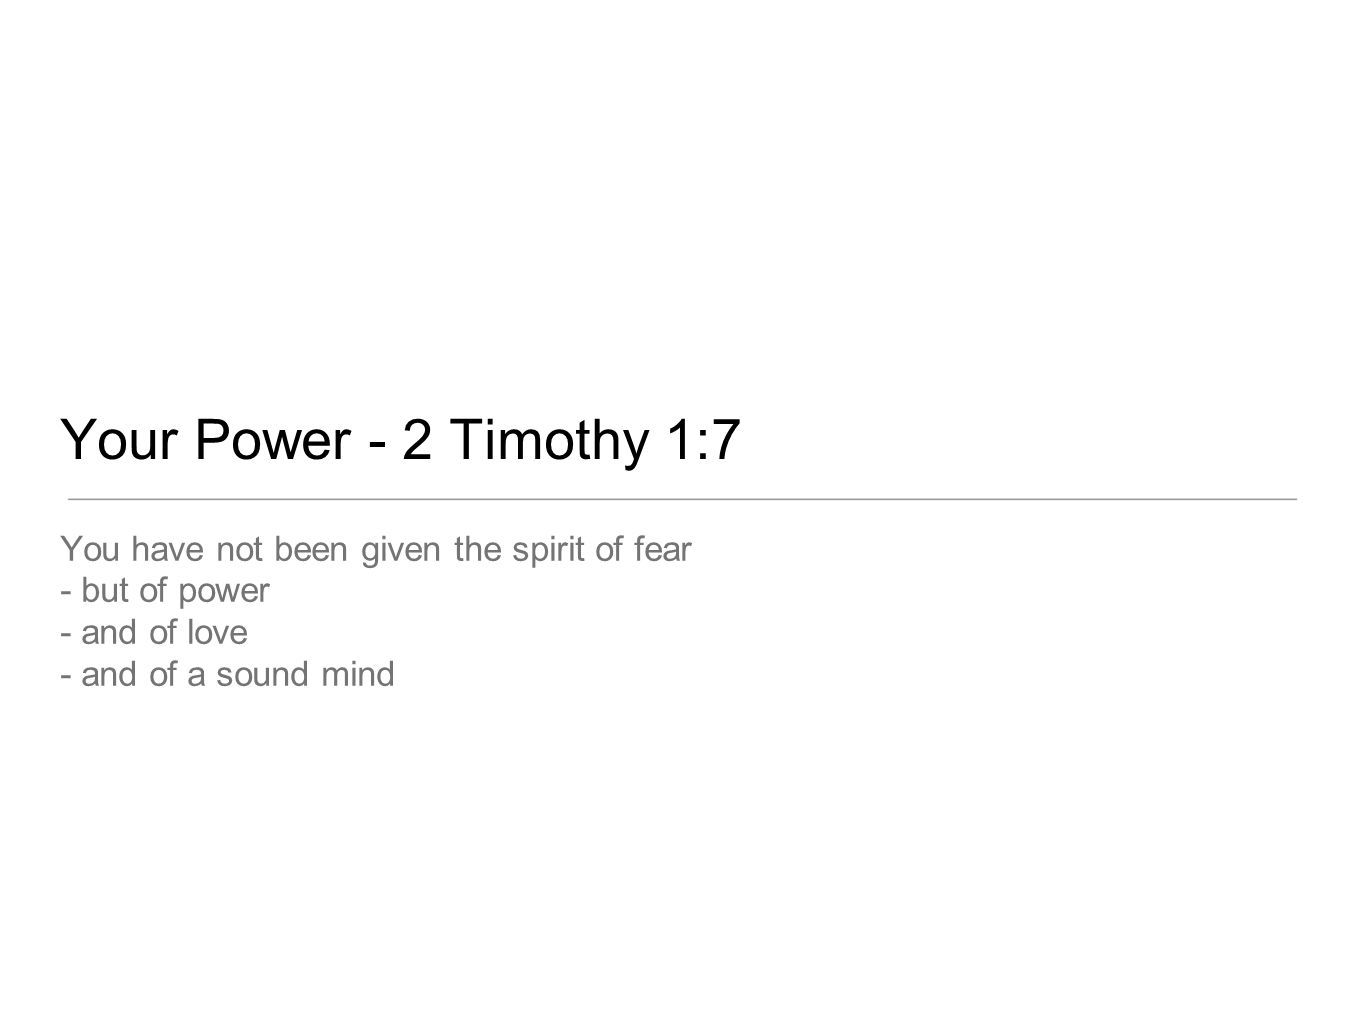 Your Power - 2 Timothy 1:7 You have not been given the spirit of fear - but of power - and of love - and of a sound mind